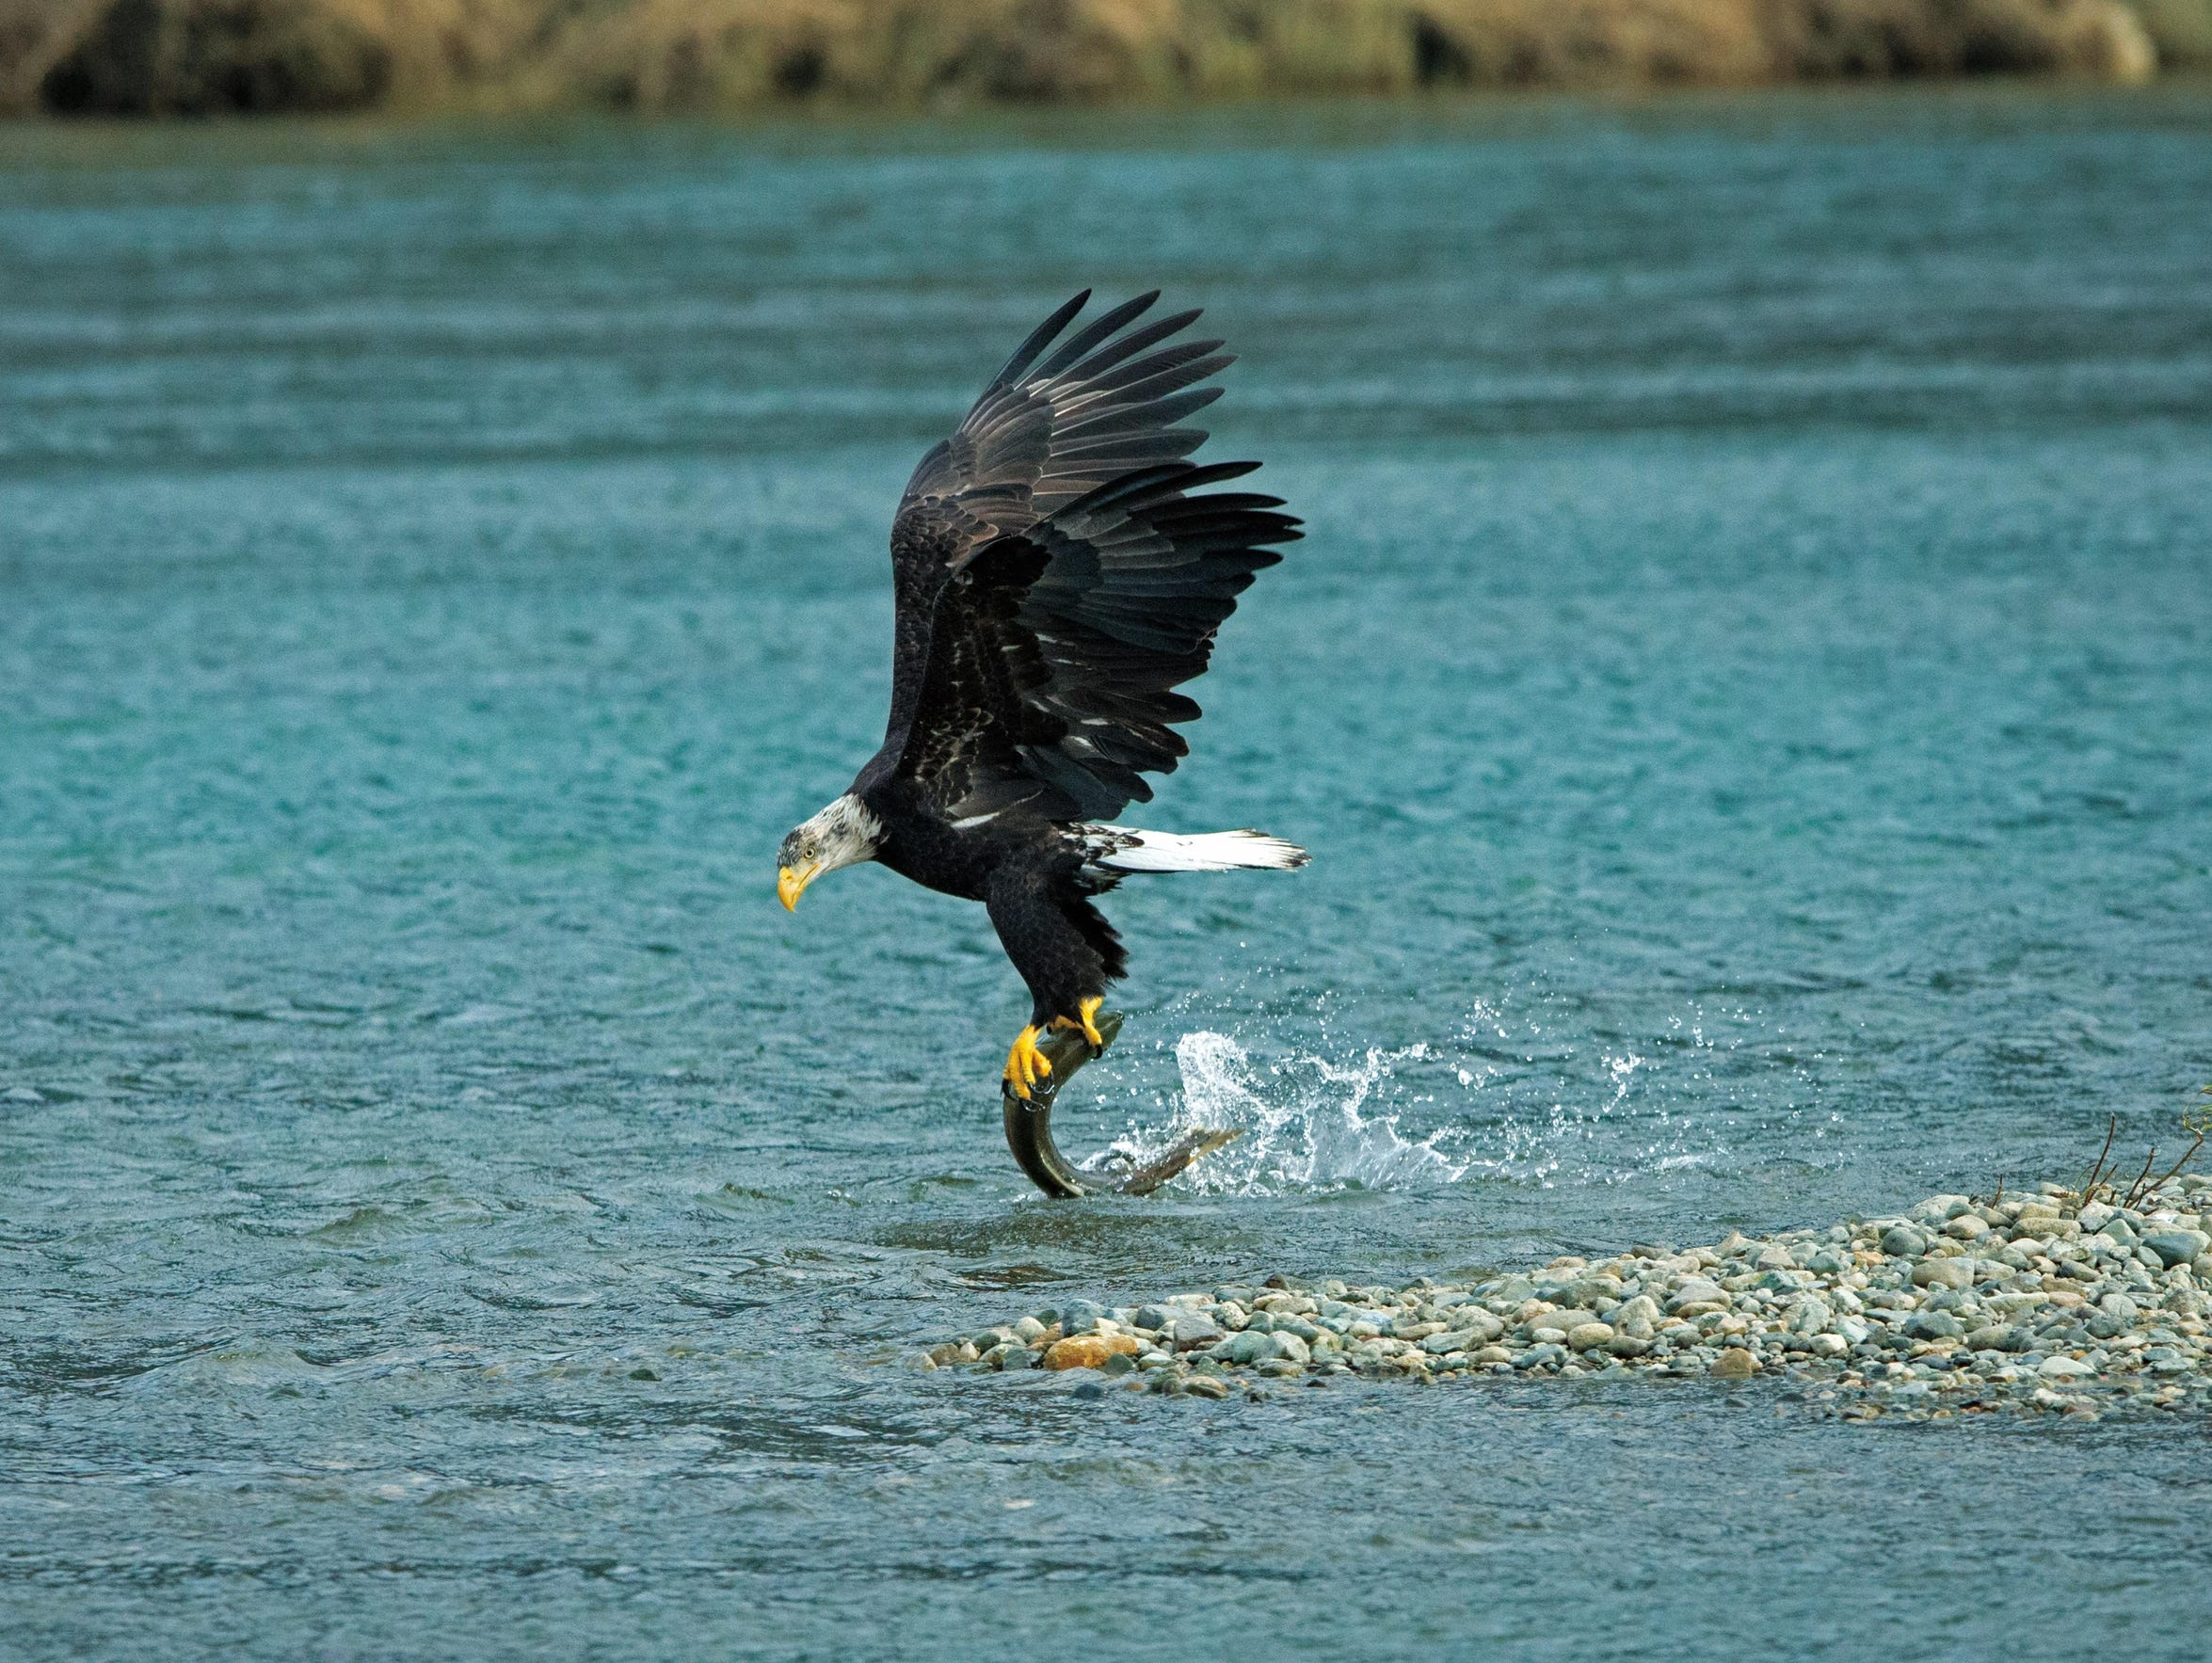 """The Catch"" – an eagle lands a fish in a photo John"